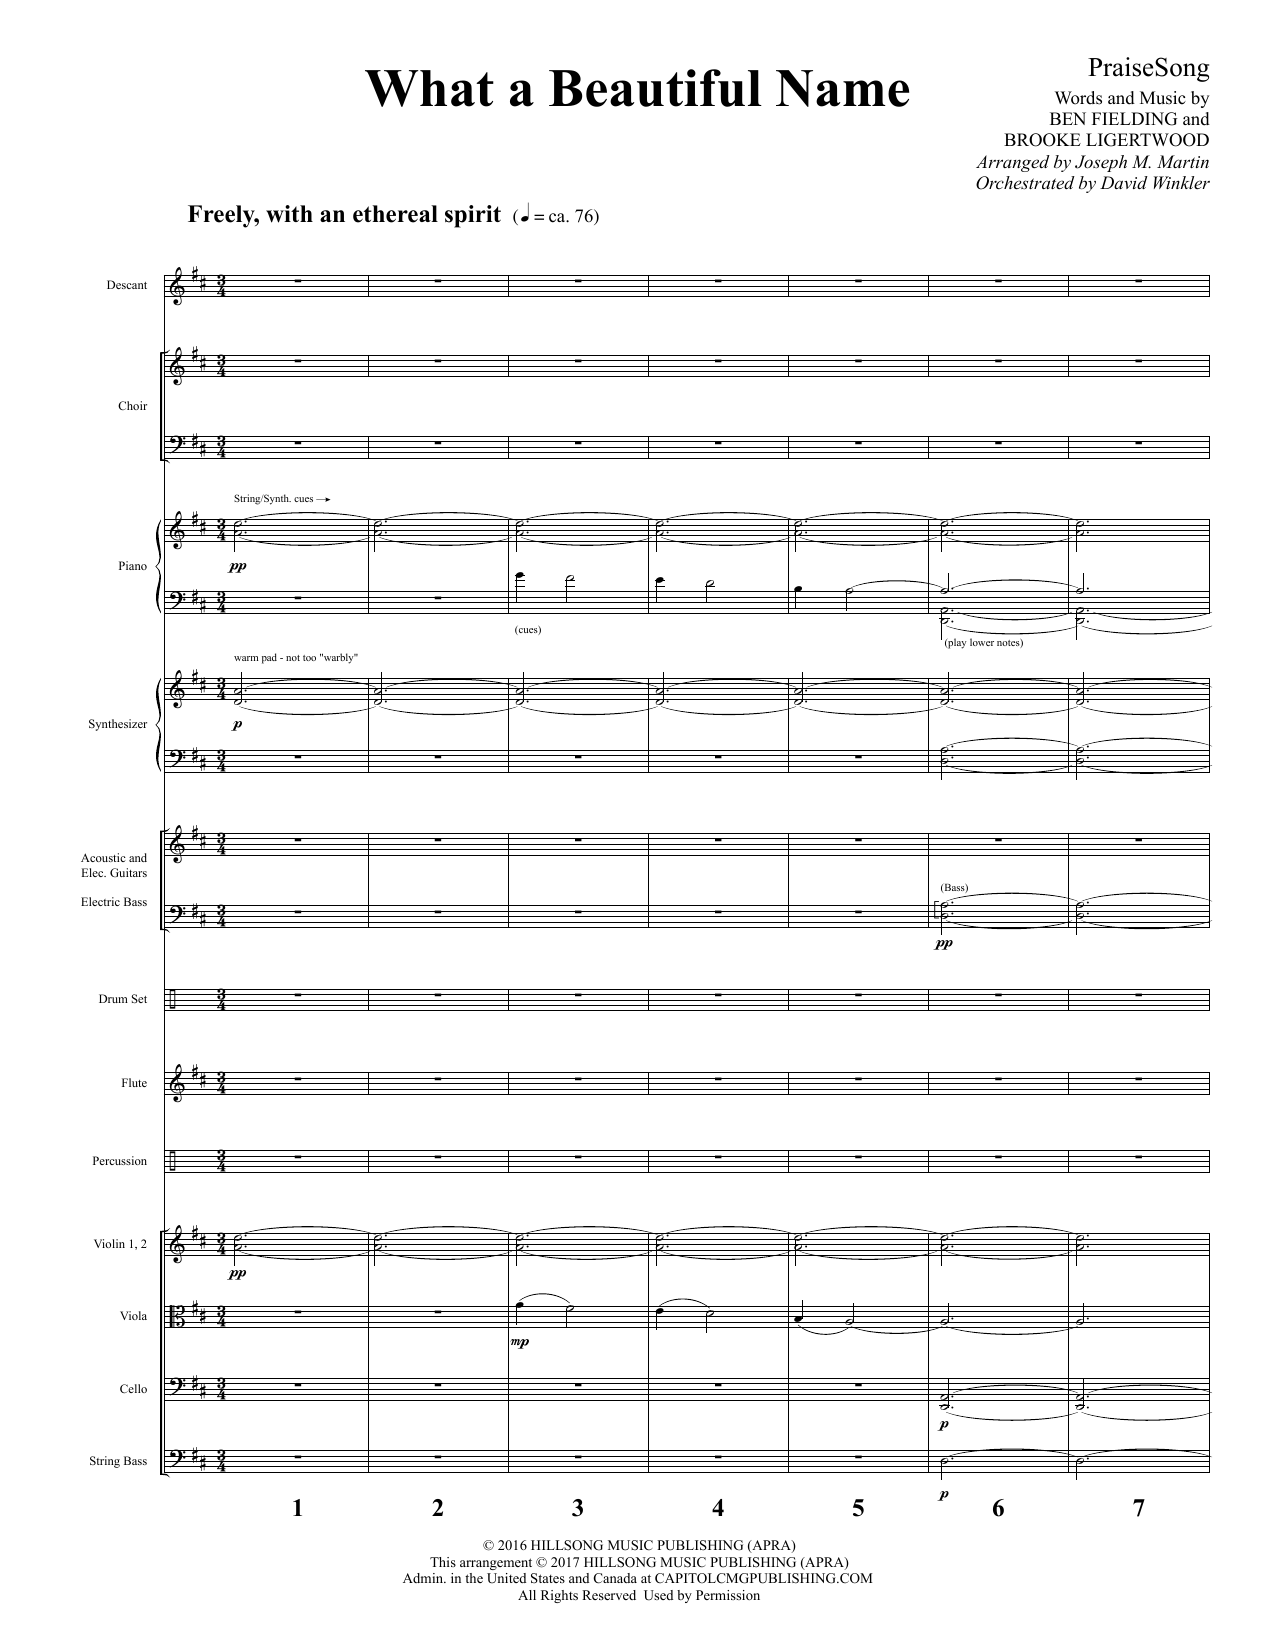 Hillsong Worship What a Beautiful Name (arr. Joseph M. Martin) - Full Score sheet music notes and chords. Download Printable PDF.